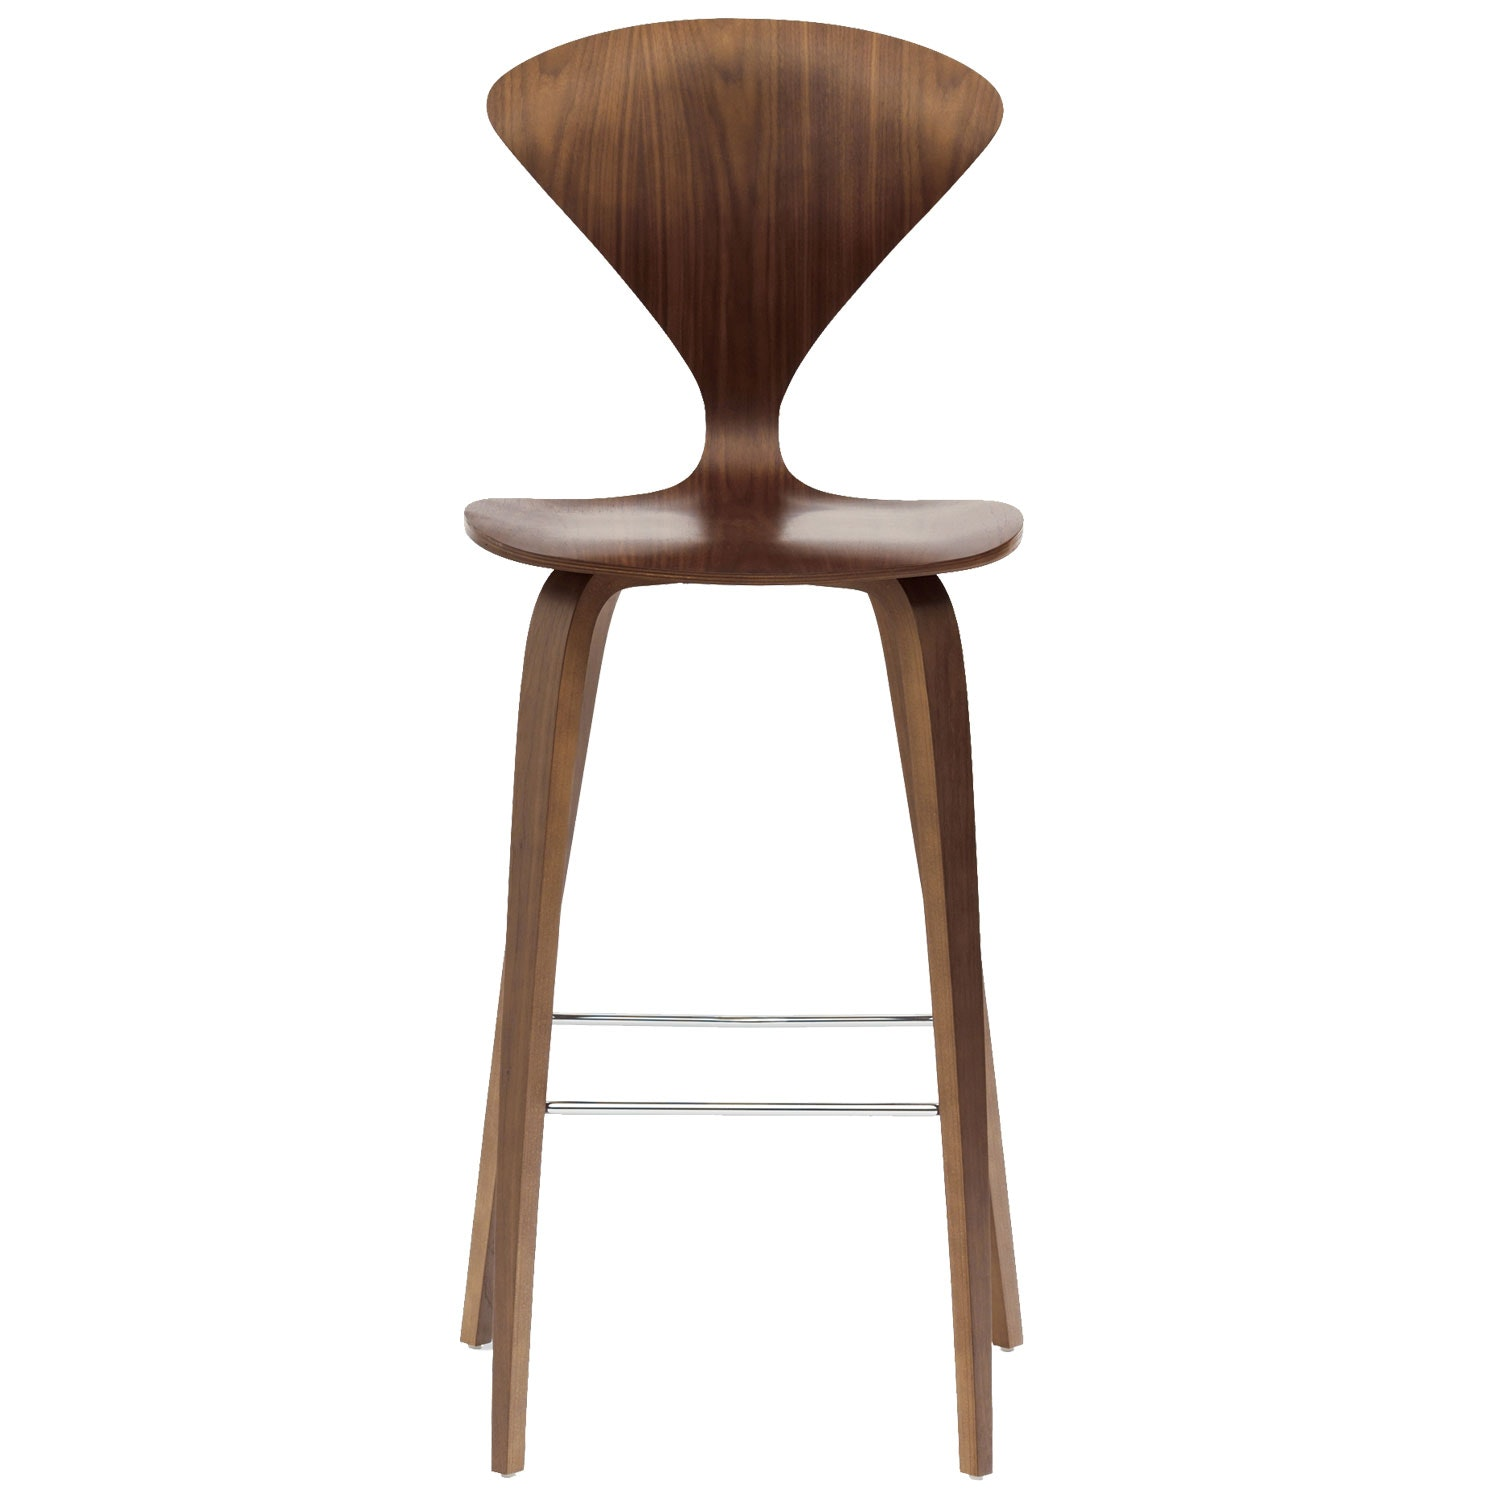 design-within-reach-cherner-counter-stool-3-furniture-stools-modern-refined.jpg